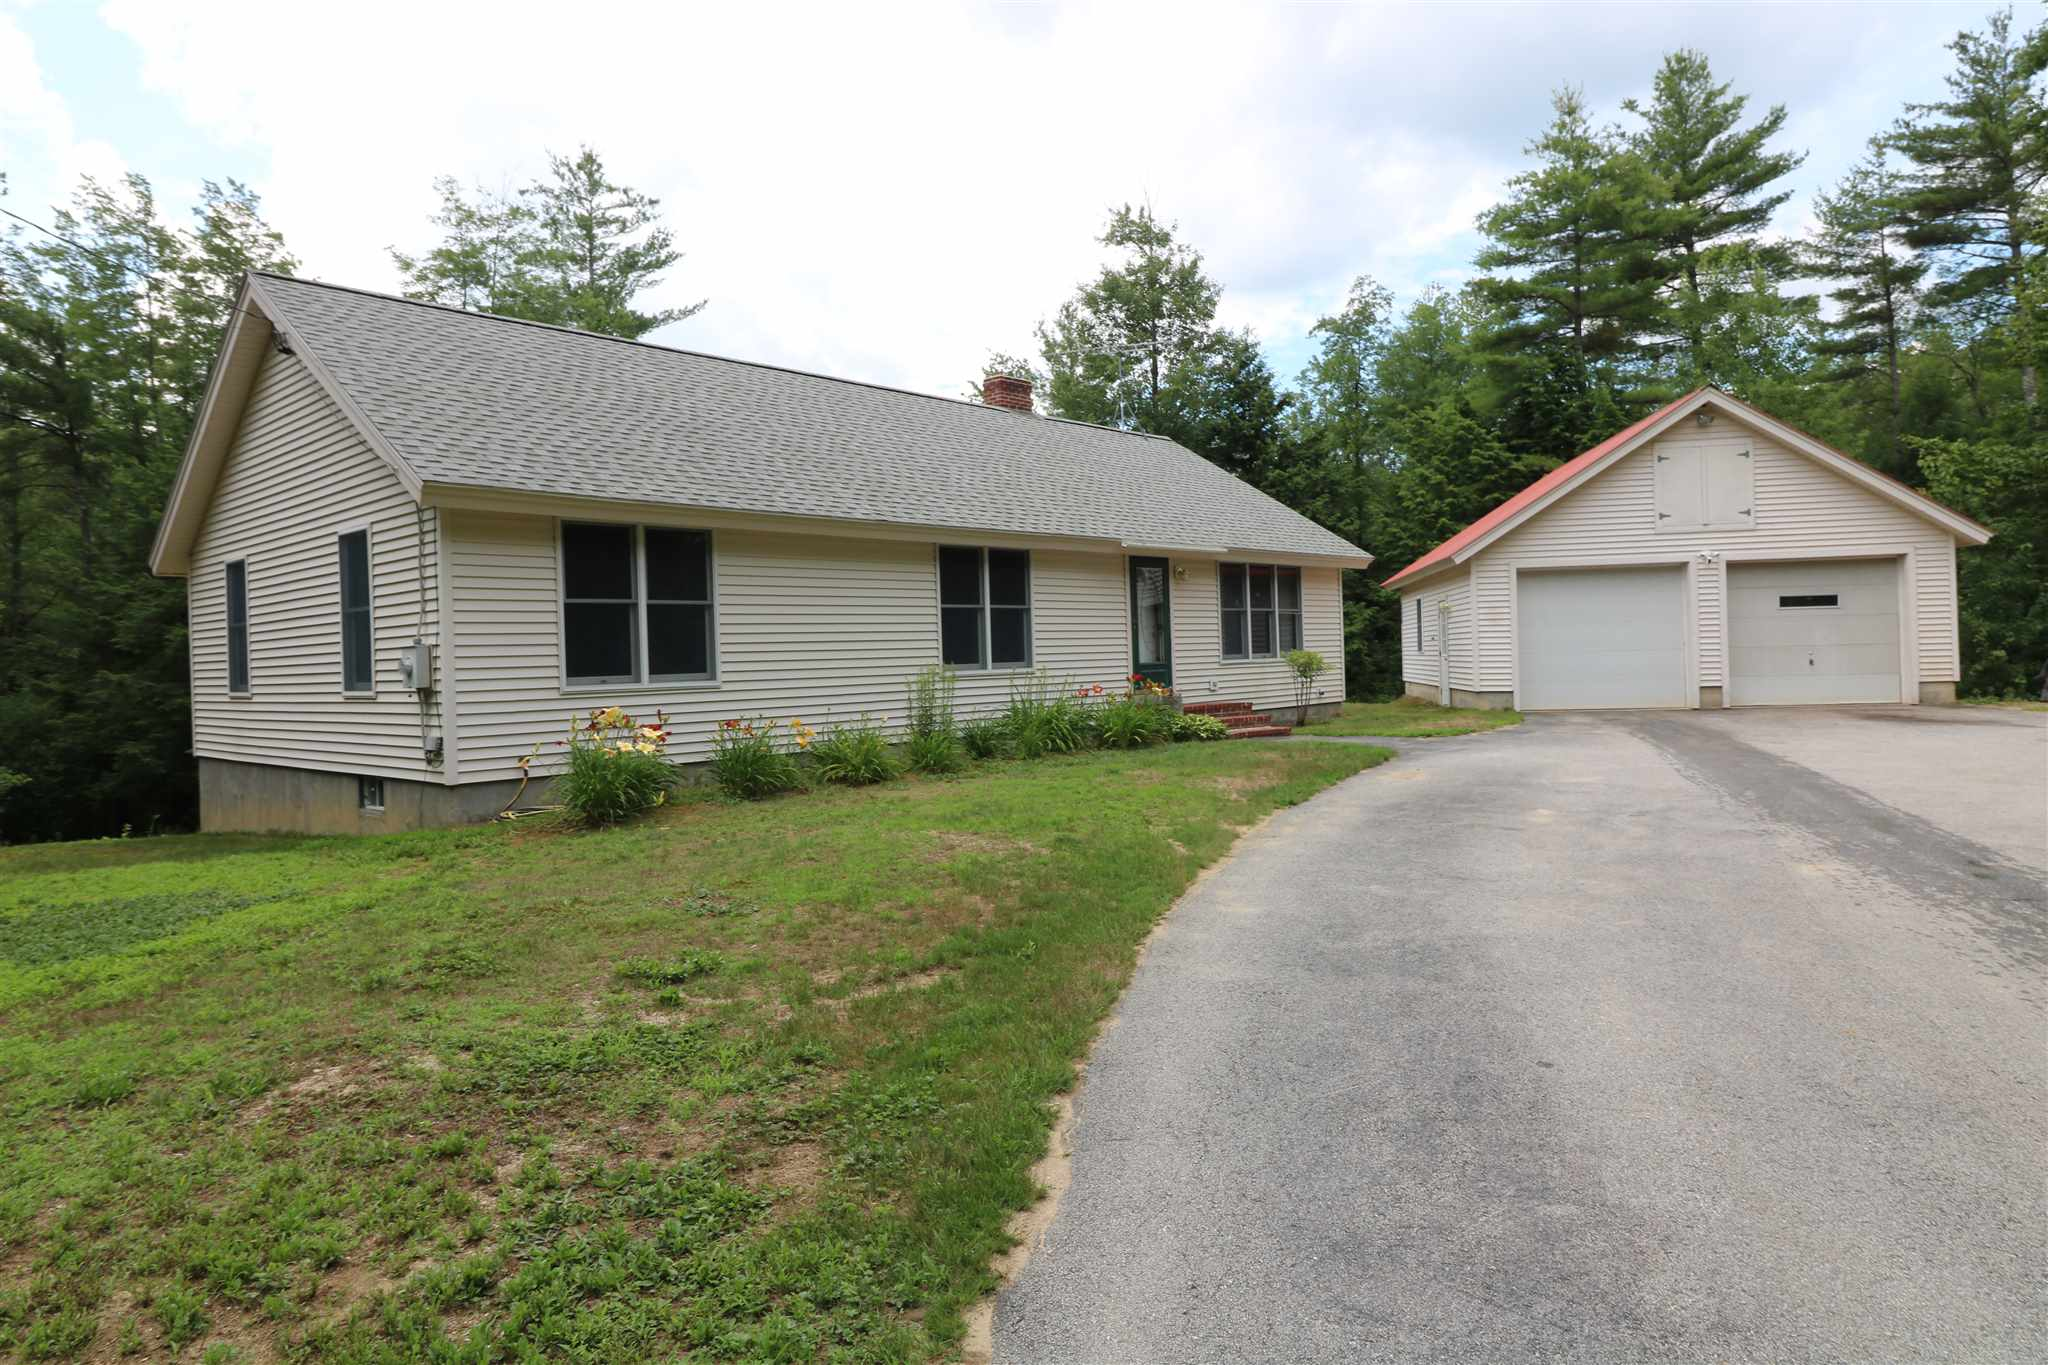 MLS 4816698: 697 Gilmore Pond Road, Jaffrey NH